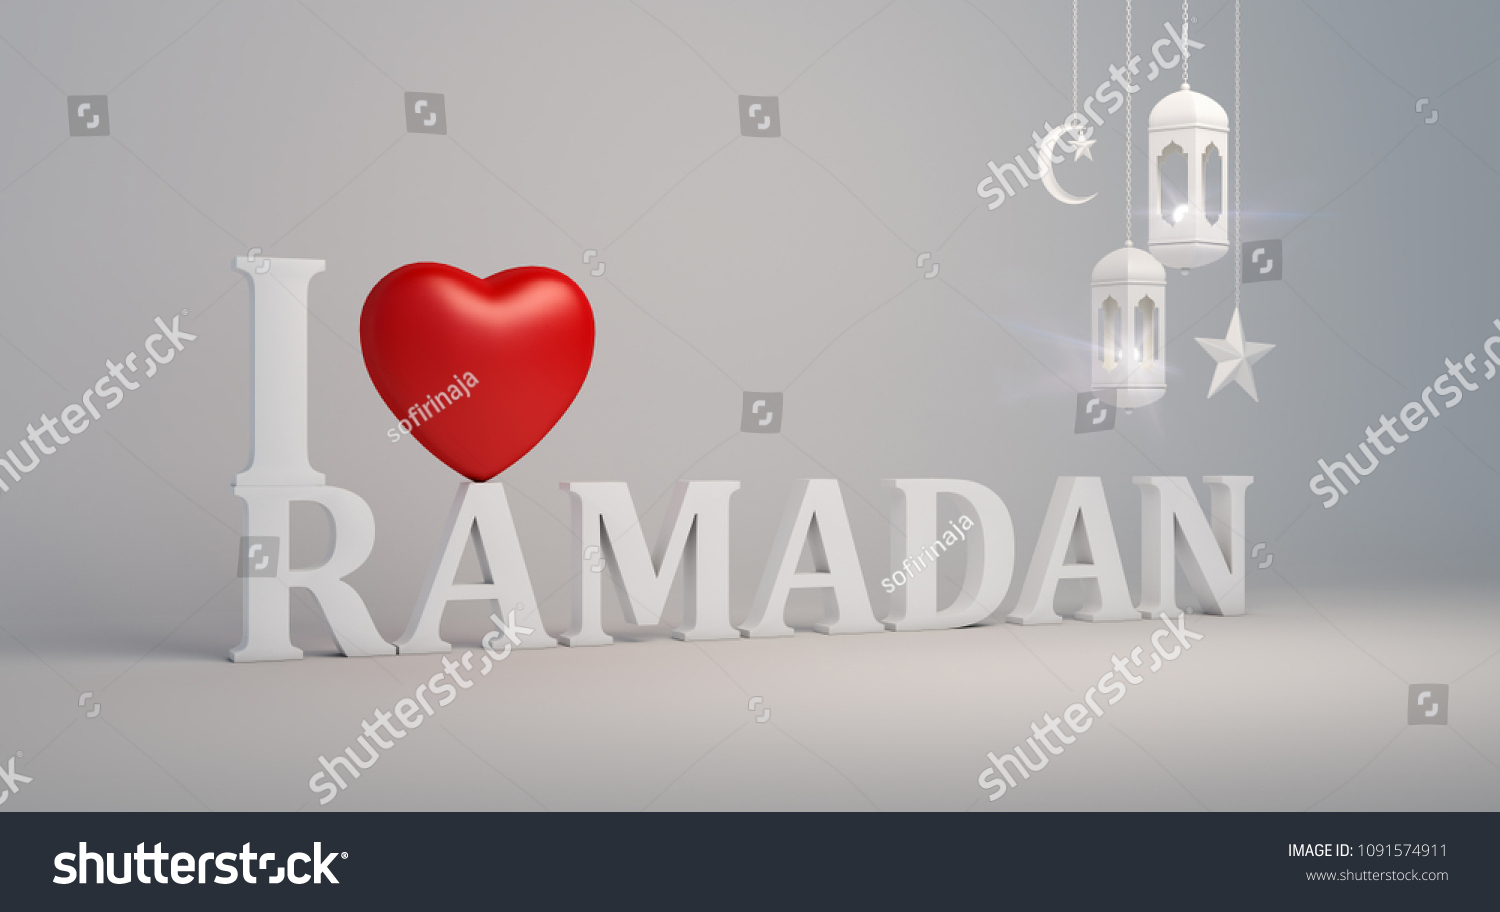 Love Ramadan Text Red Heart Shape Stock Illustration 1091574911